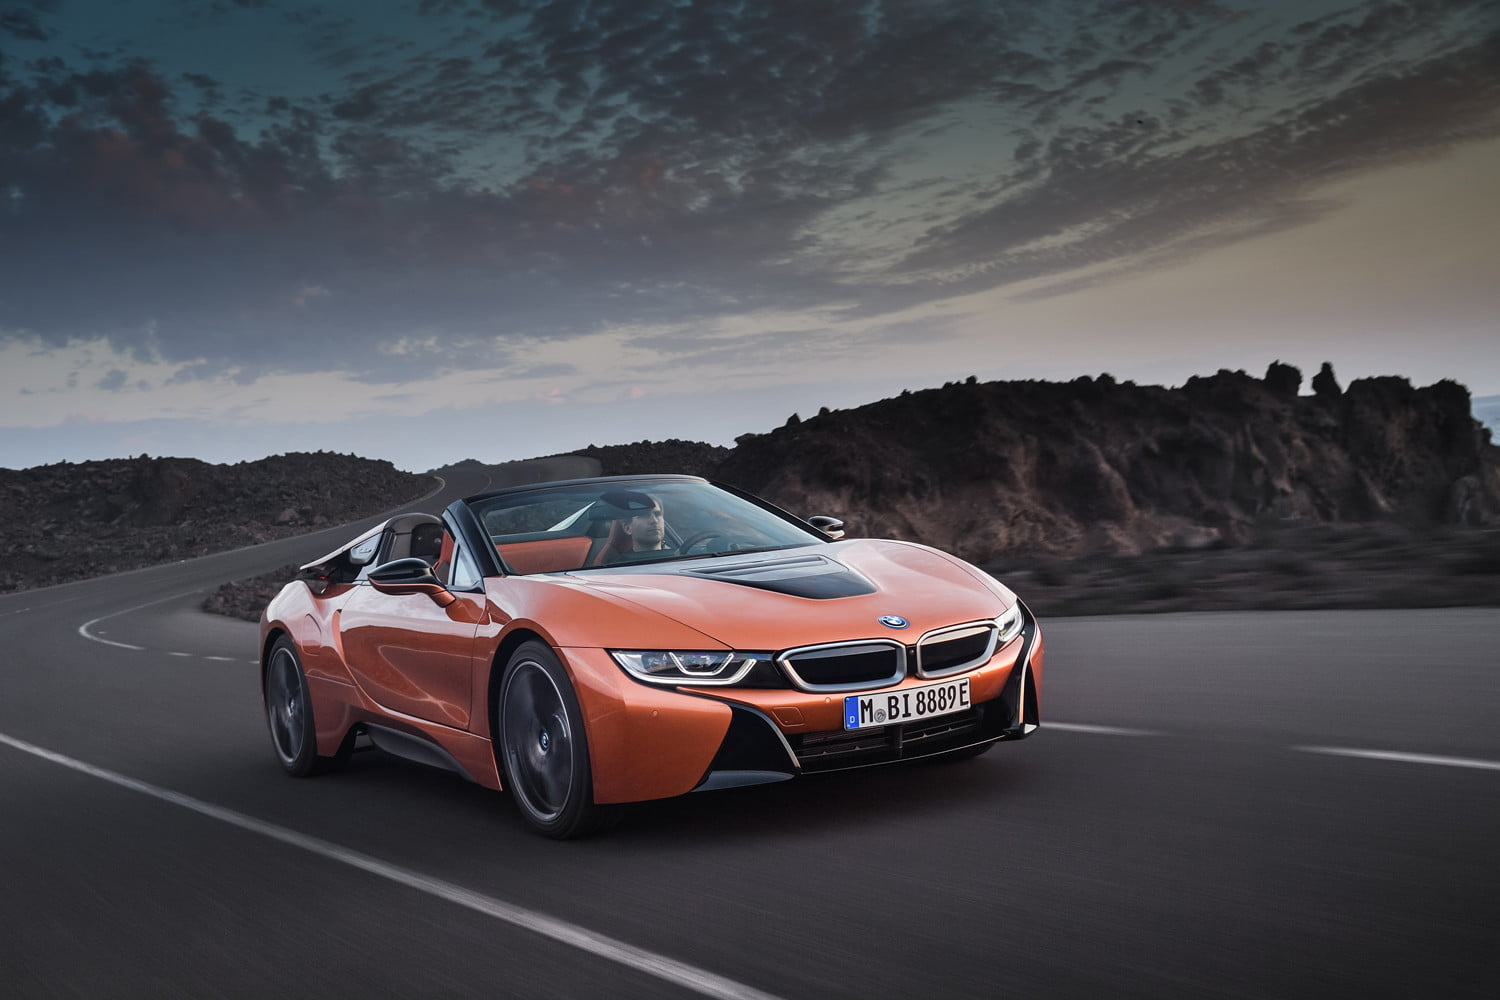 BMW New Car >> New Bmw Hybrid Supercar Could Replace I8 Report Says